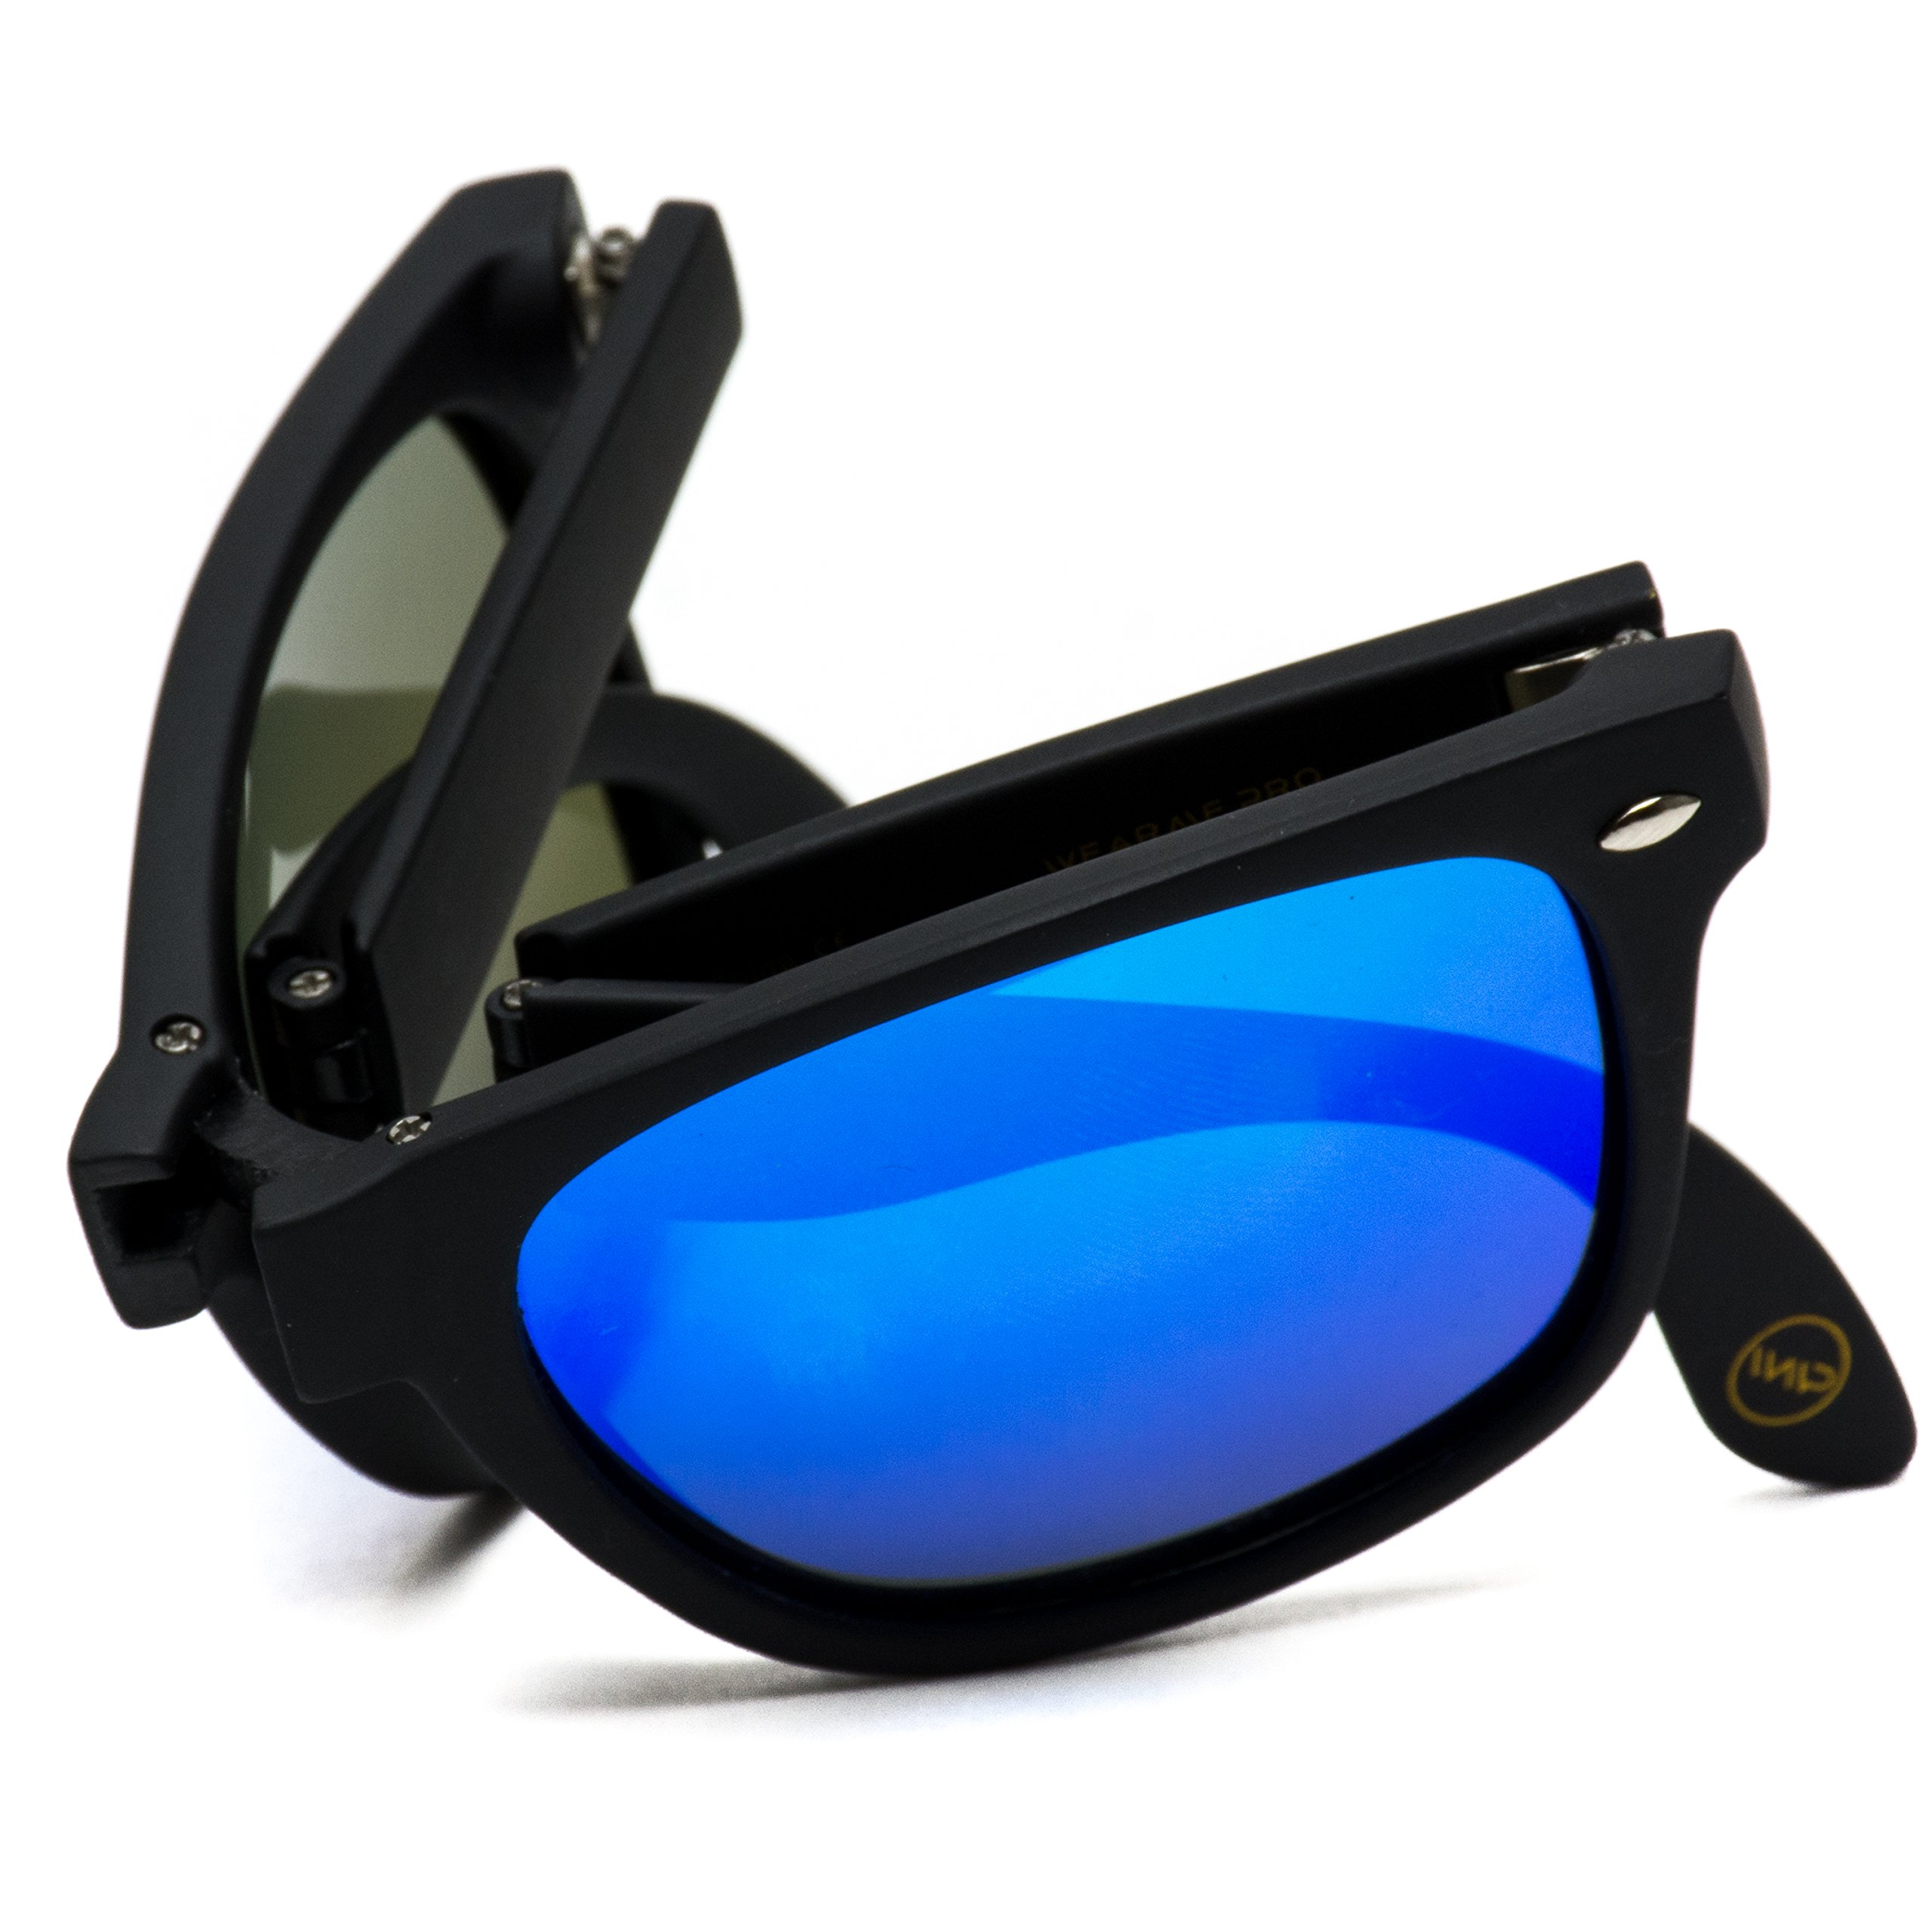 Modern Black Square Foldable Sunglasses with Case (Black Frame/Mirror Blue Lens) by WearMe Pro